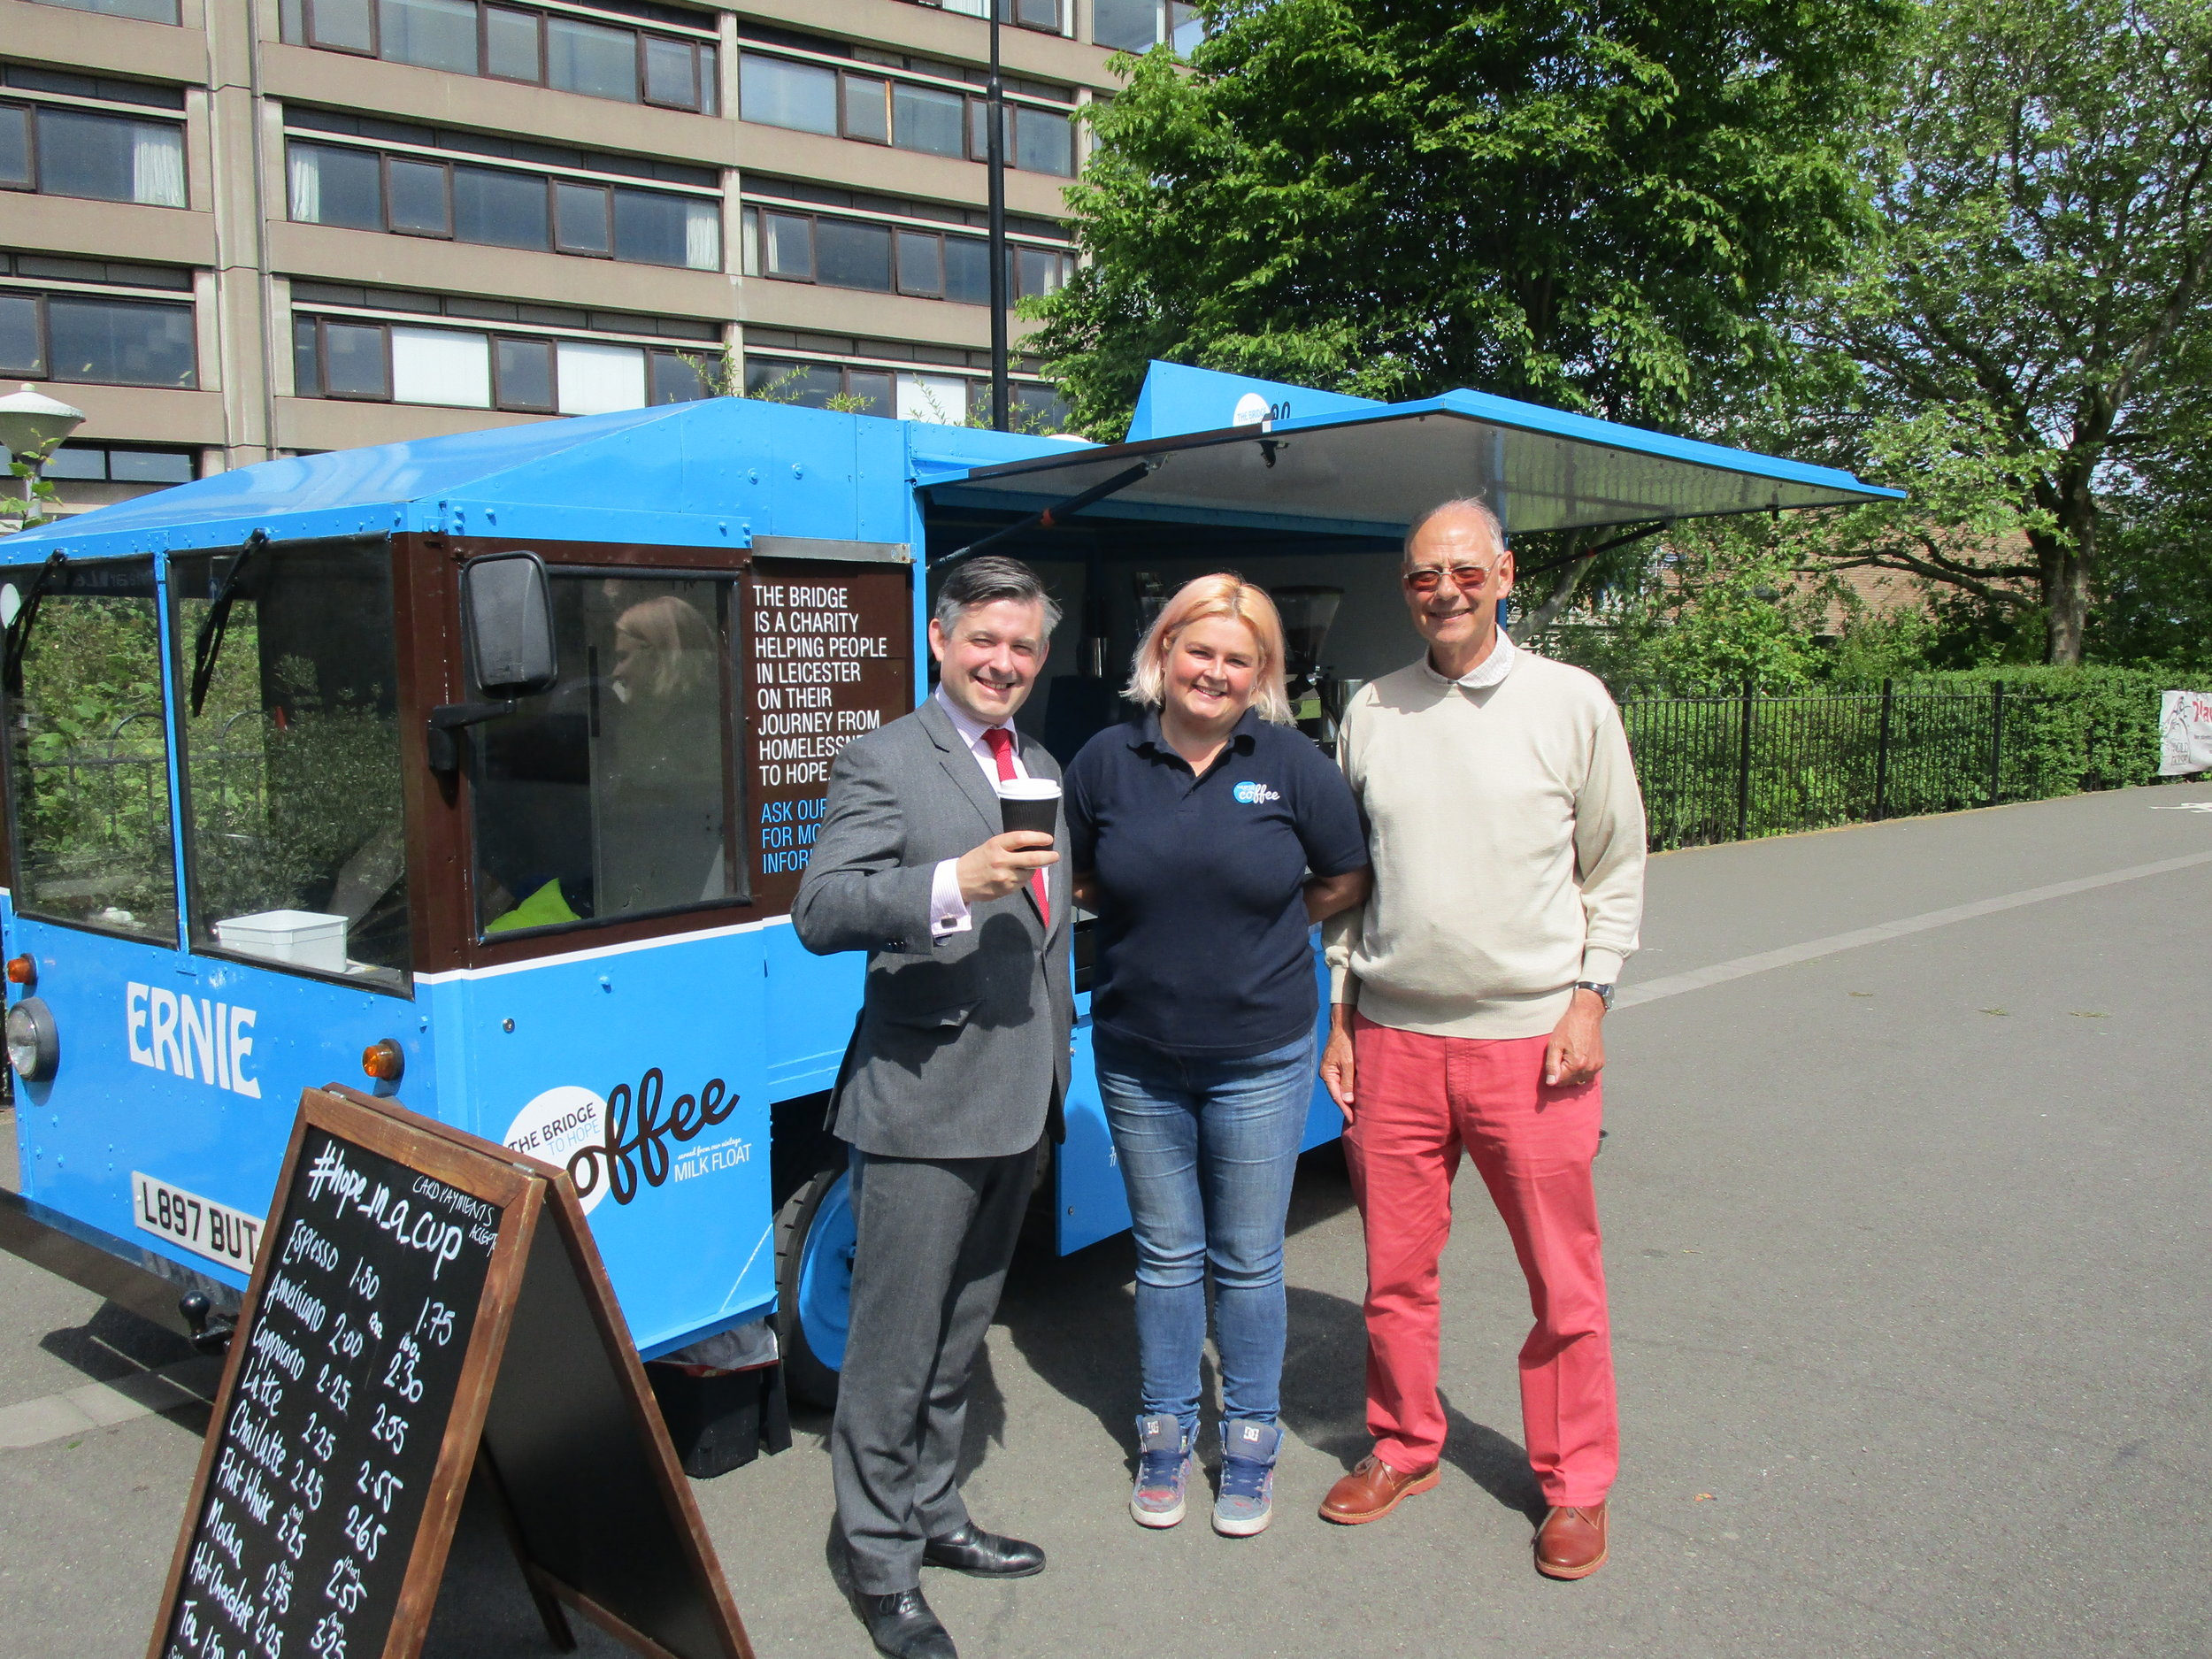 Jon drops by The Bridge's Coffee Milkfloat on Victoria Park. Profits from the Coffee Milkfloat go to fund The Bridge's work with homeless people - Friday May 18 2018